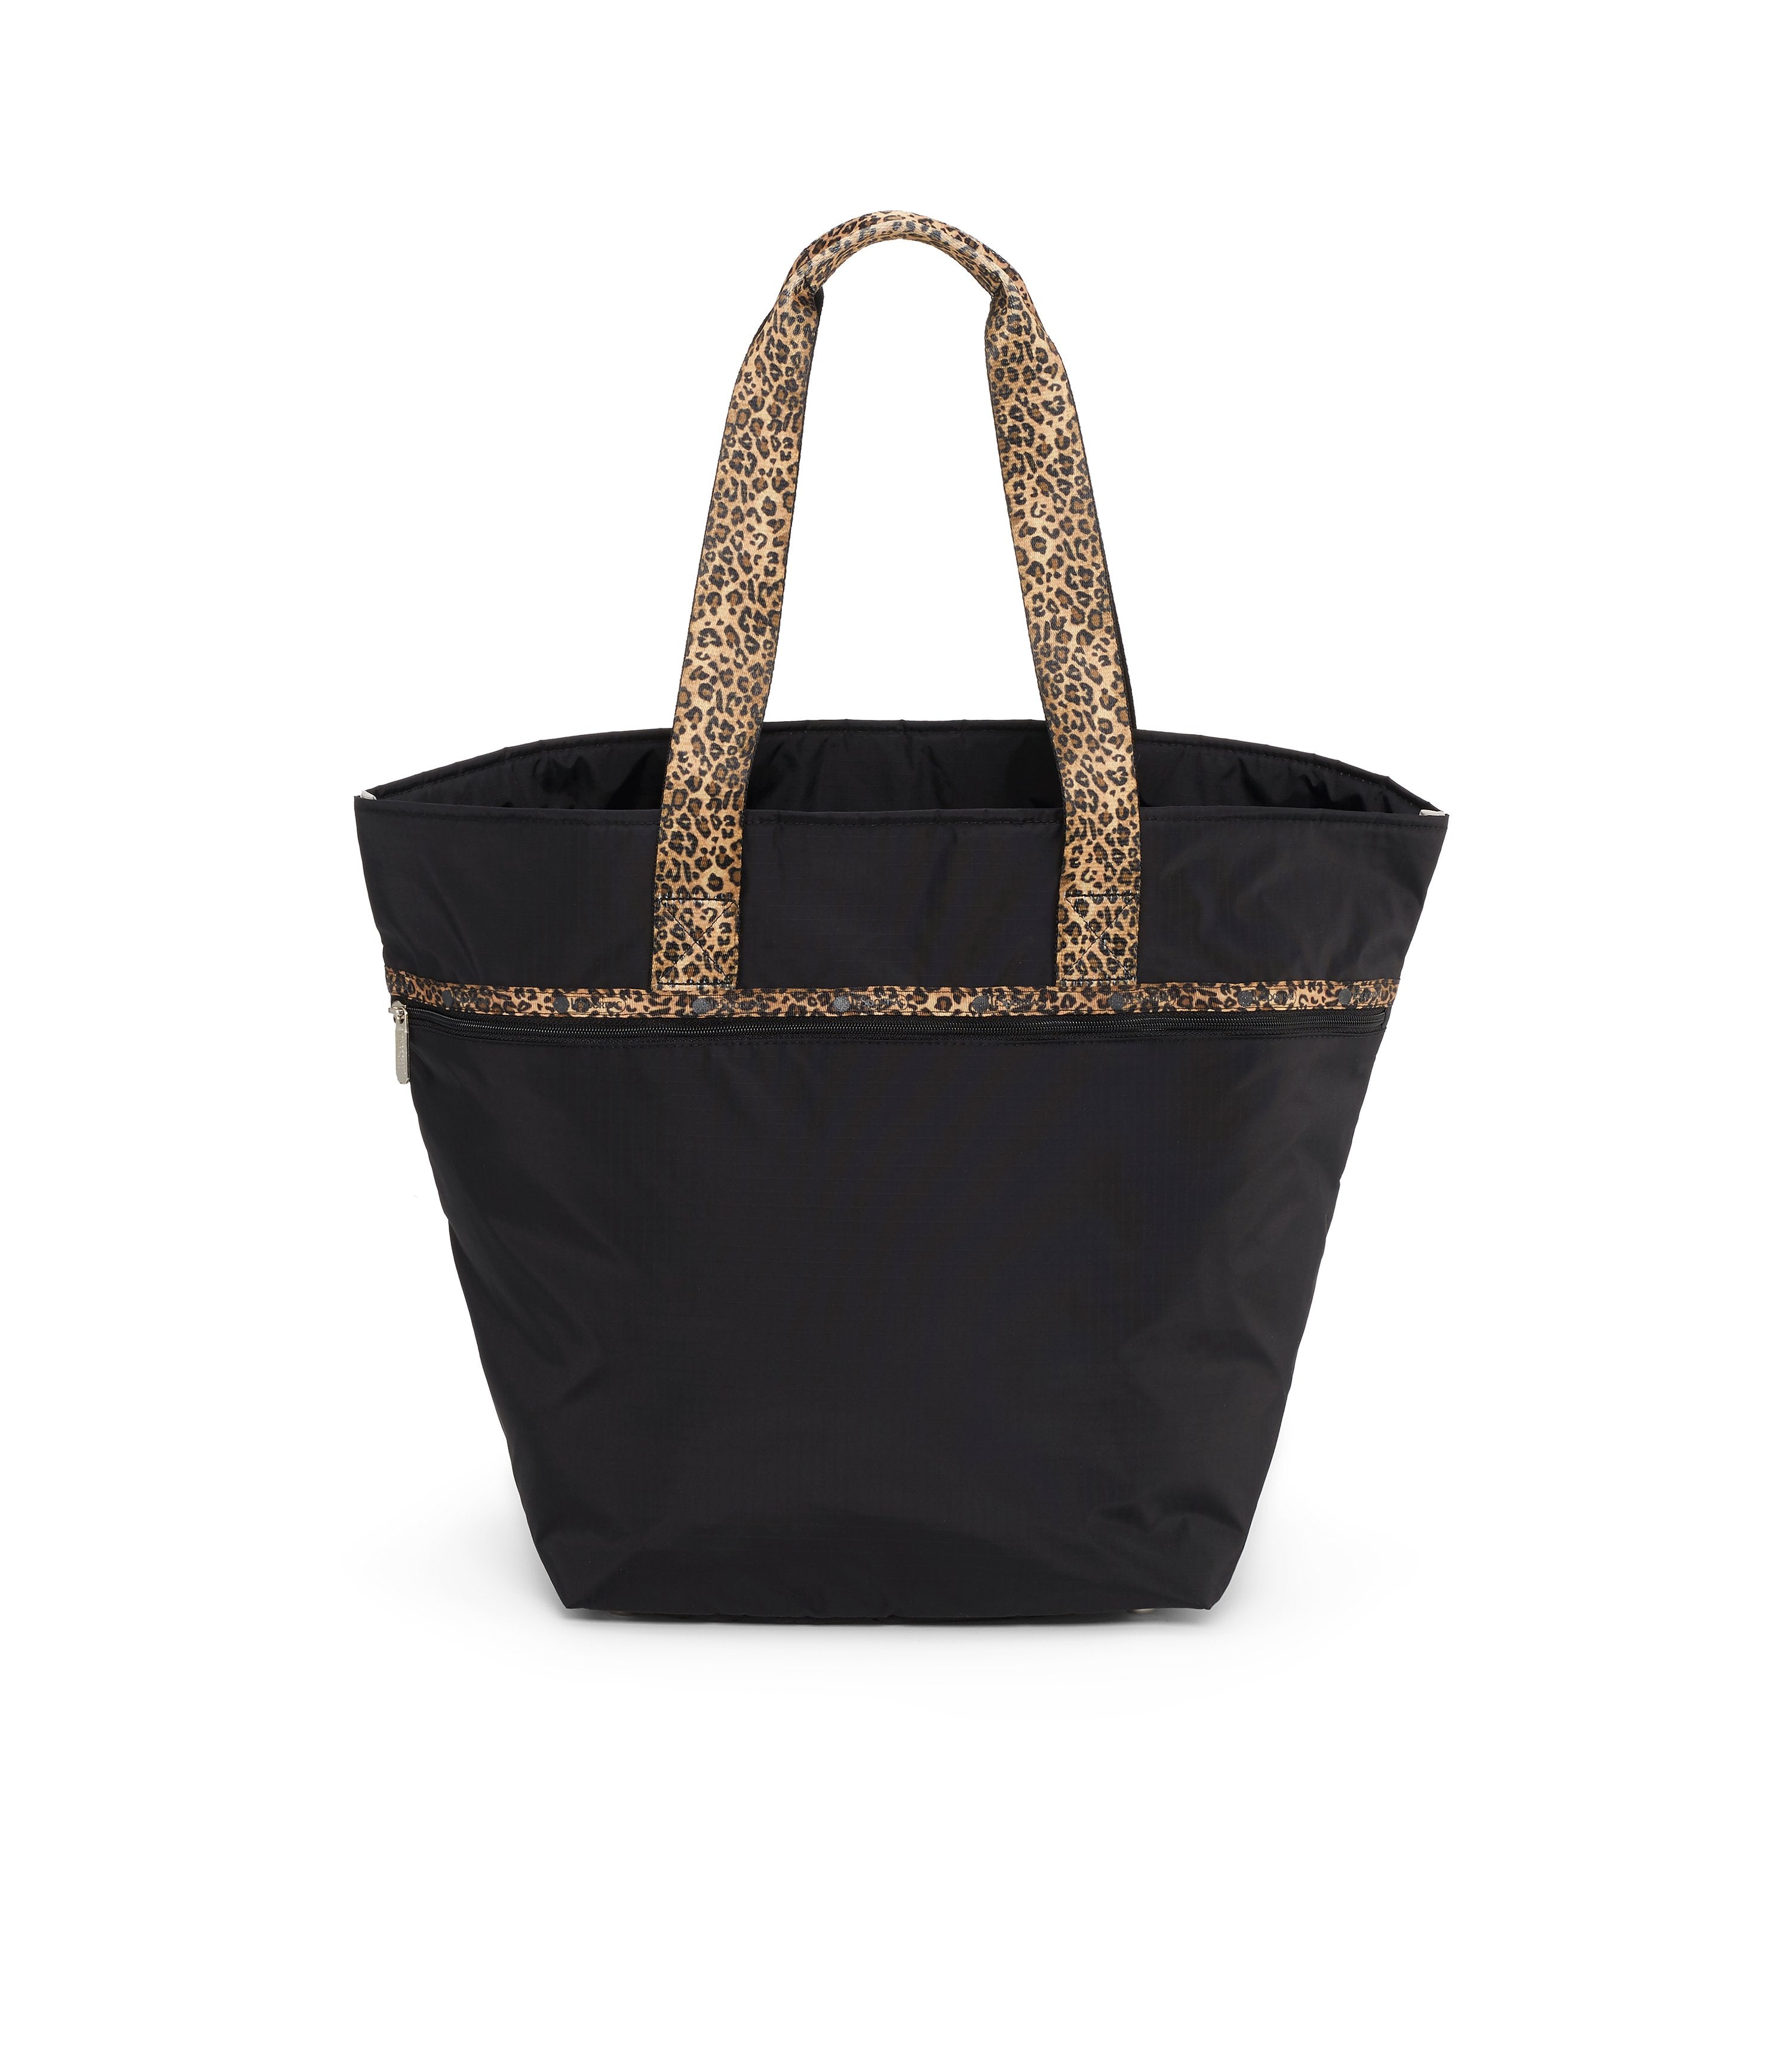 Large Elle Tote, Women's Tote Bags & Tote Purses, Carry-on, LeSportsac, Cheetah Noir